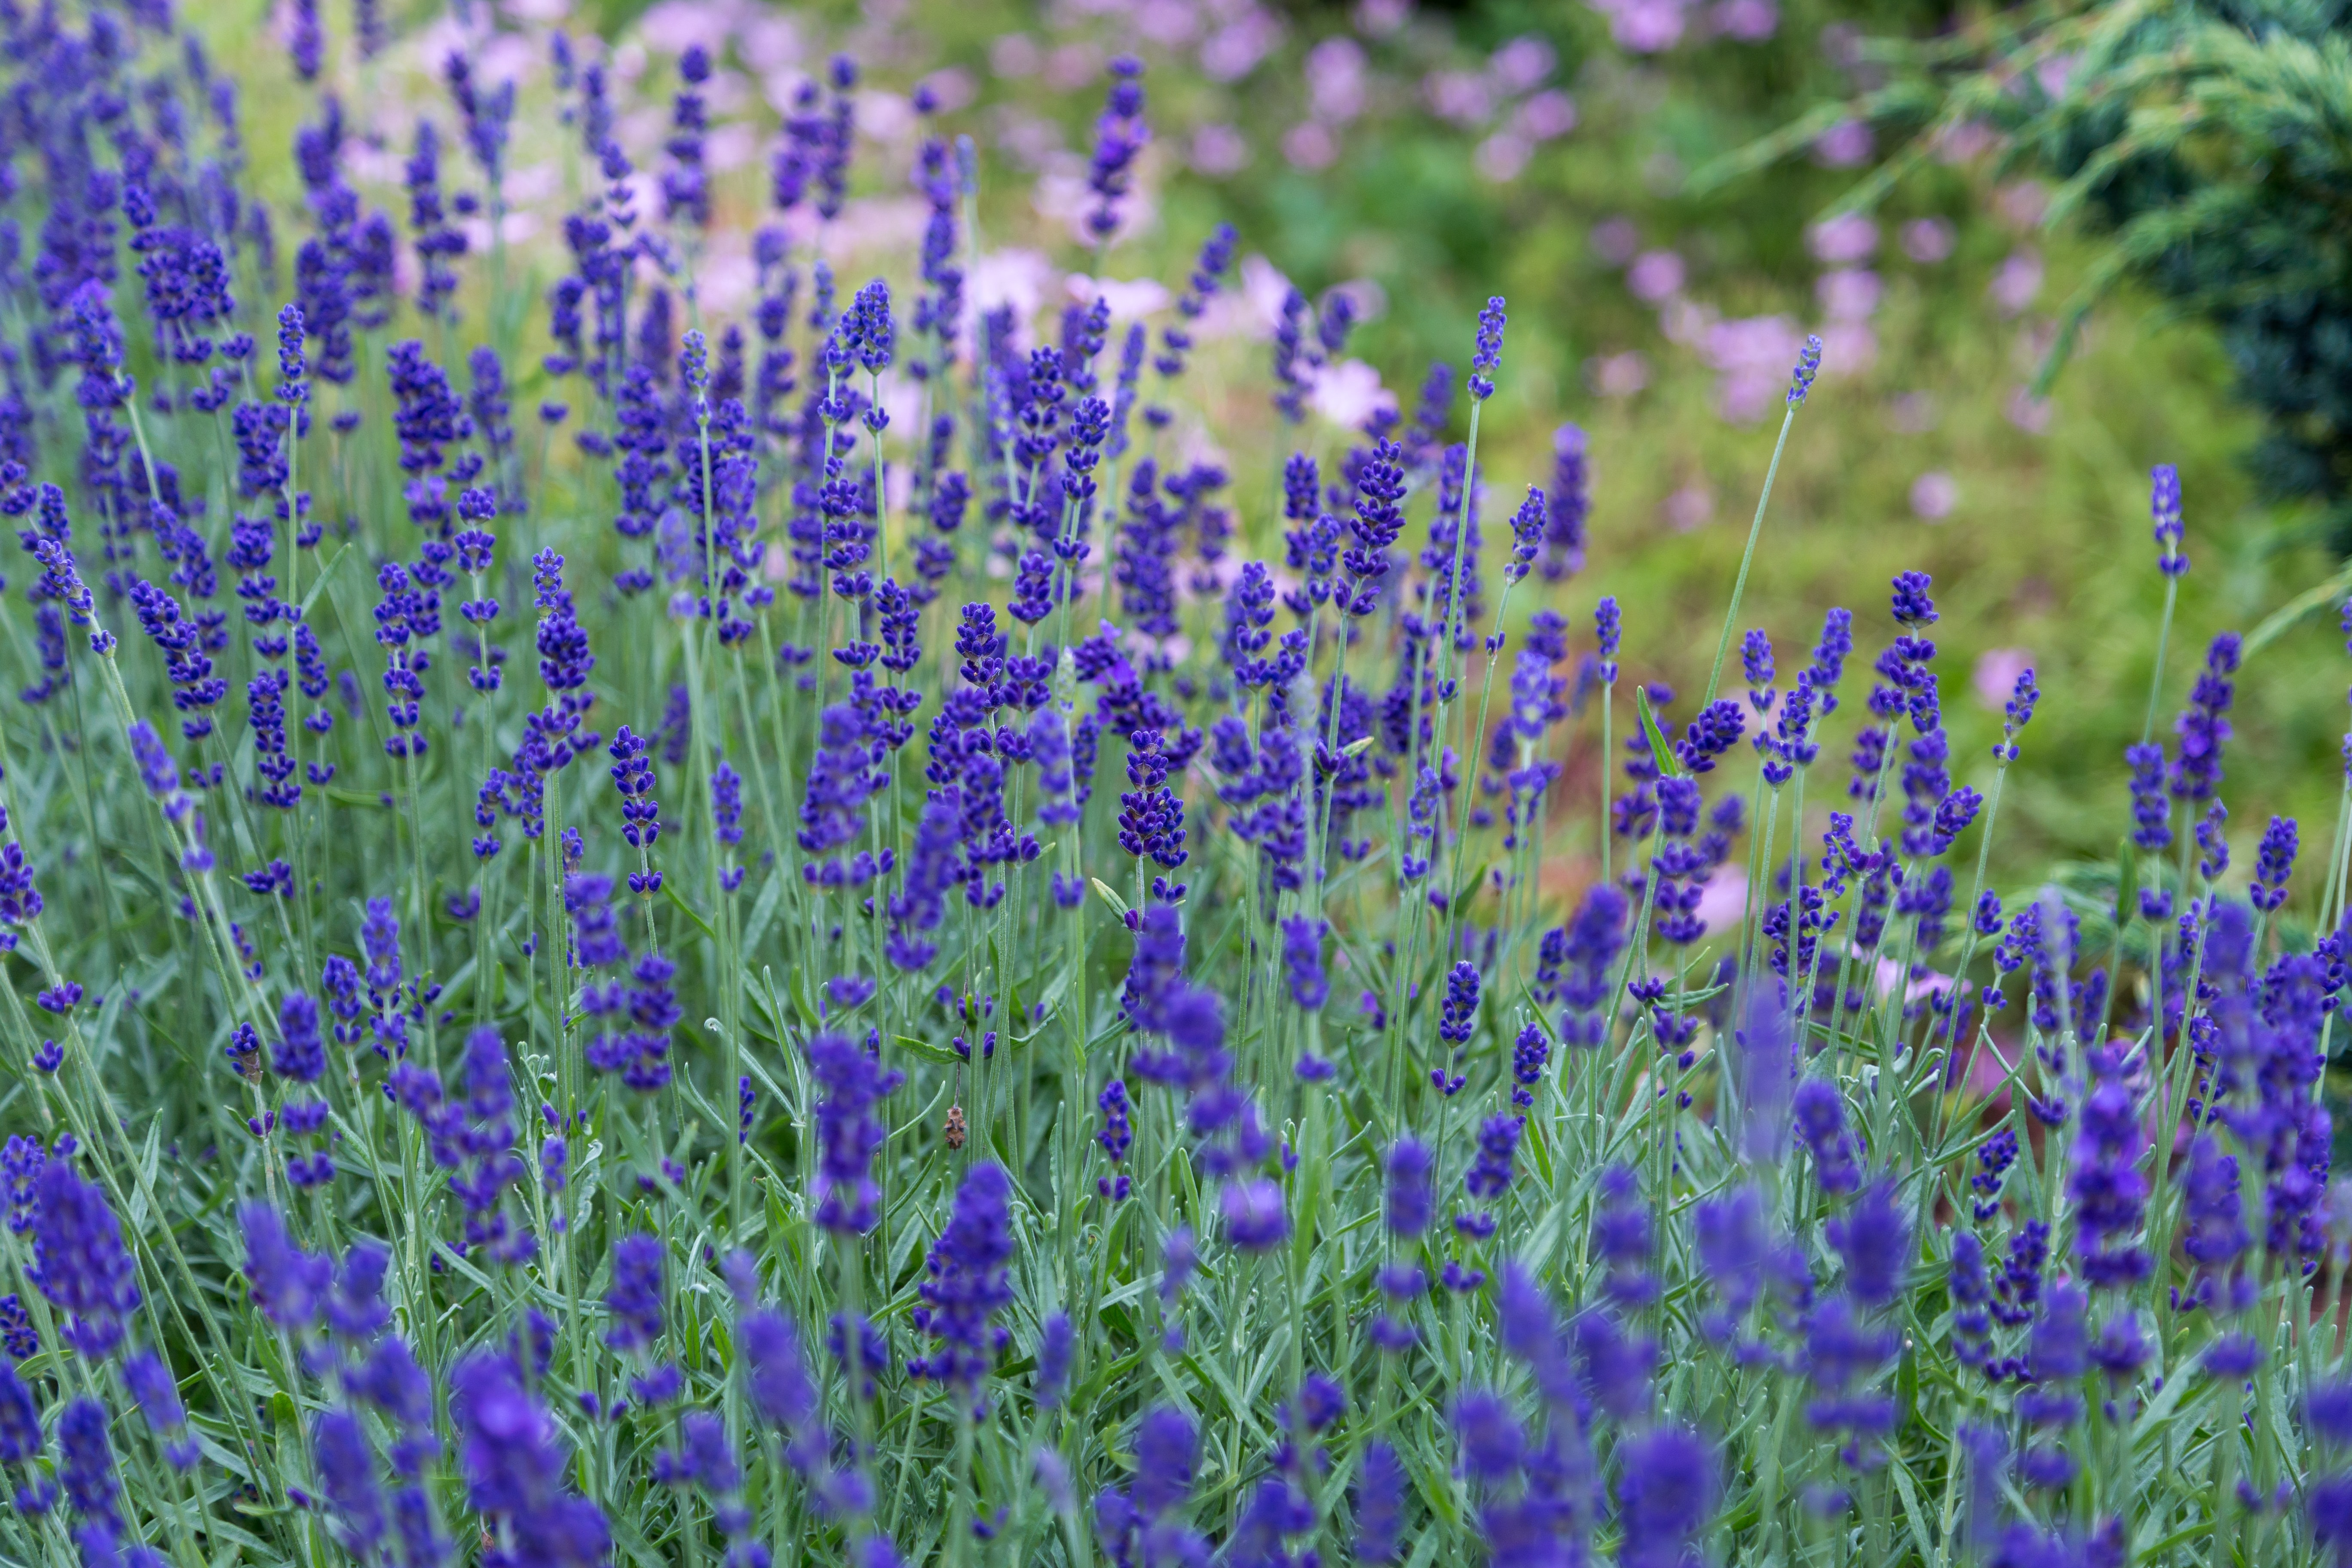 A large grouping of lavender flowers